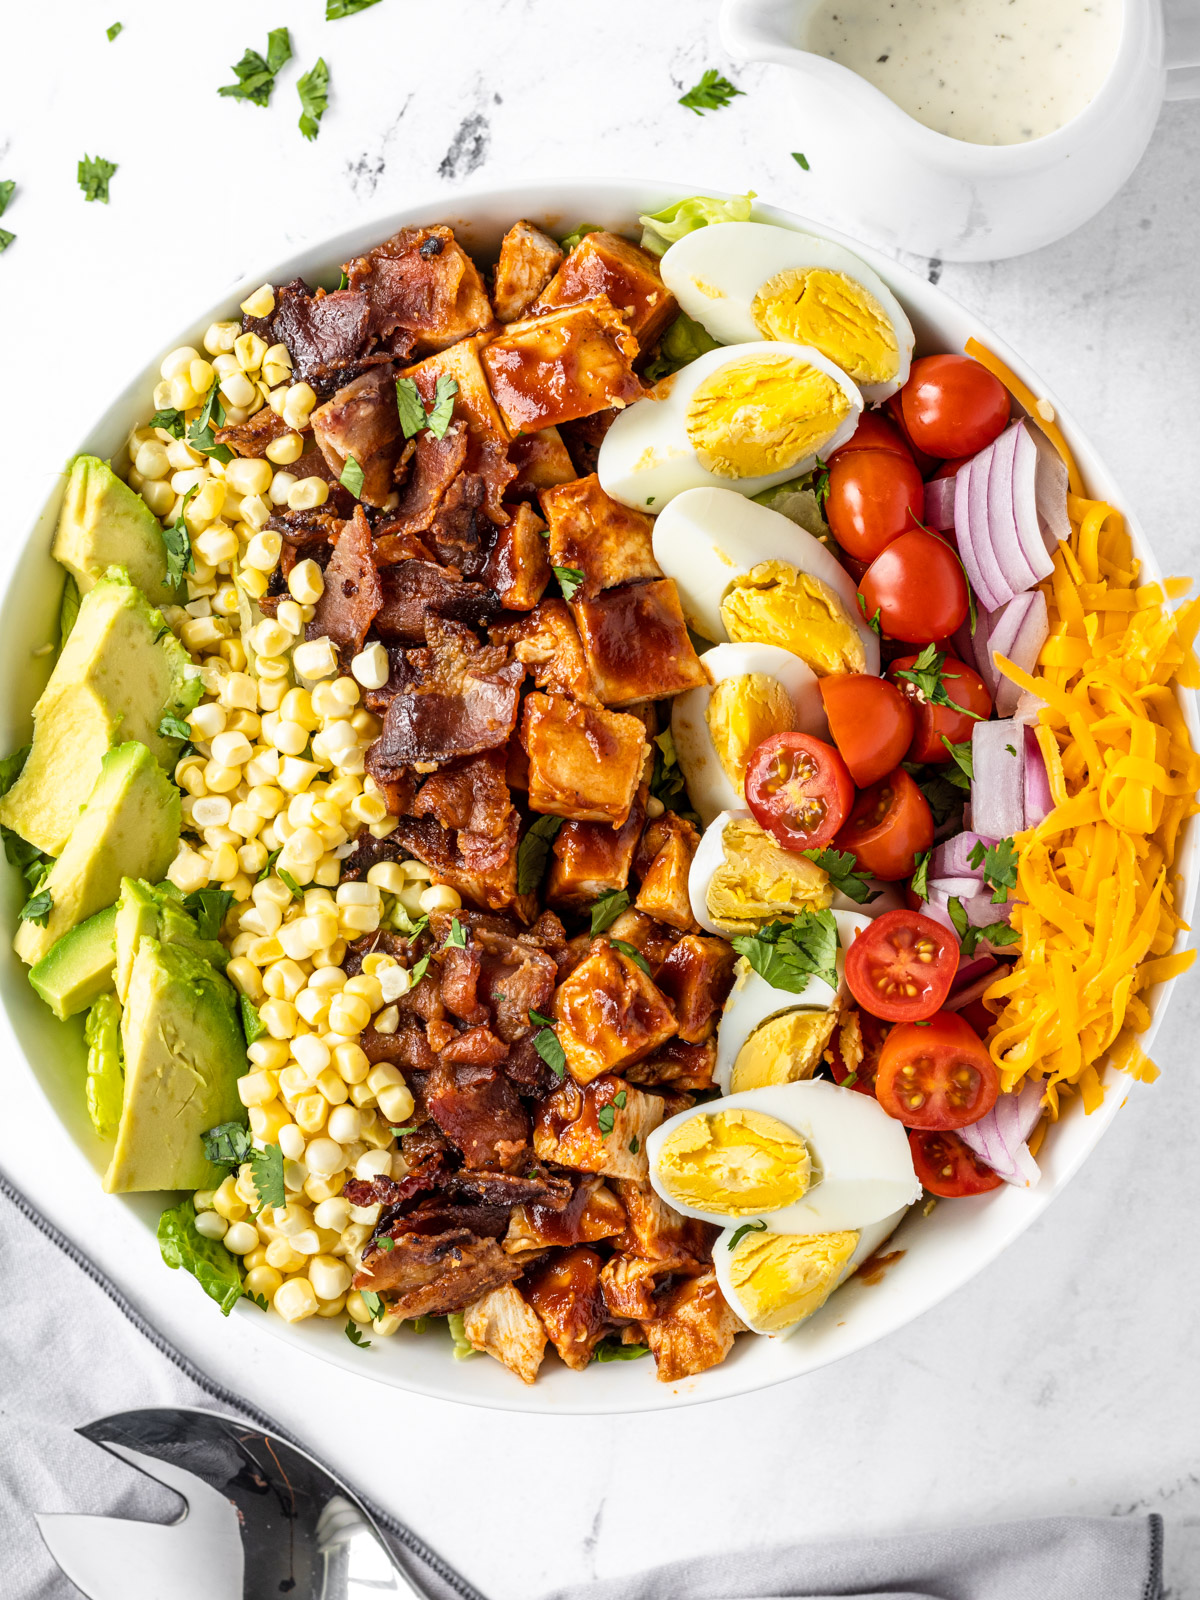 Bowl of bbq chicken cobb salad with a small pitcher of ranch dressing.